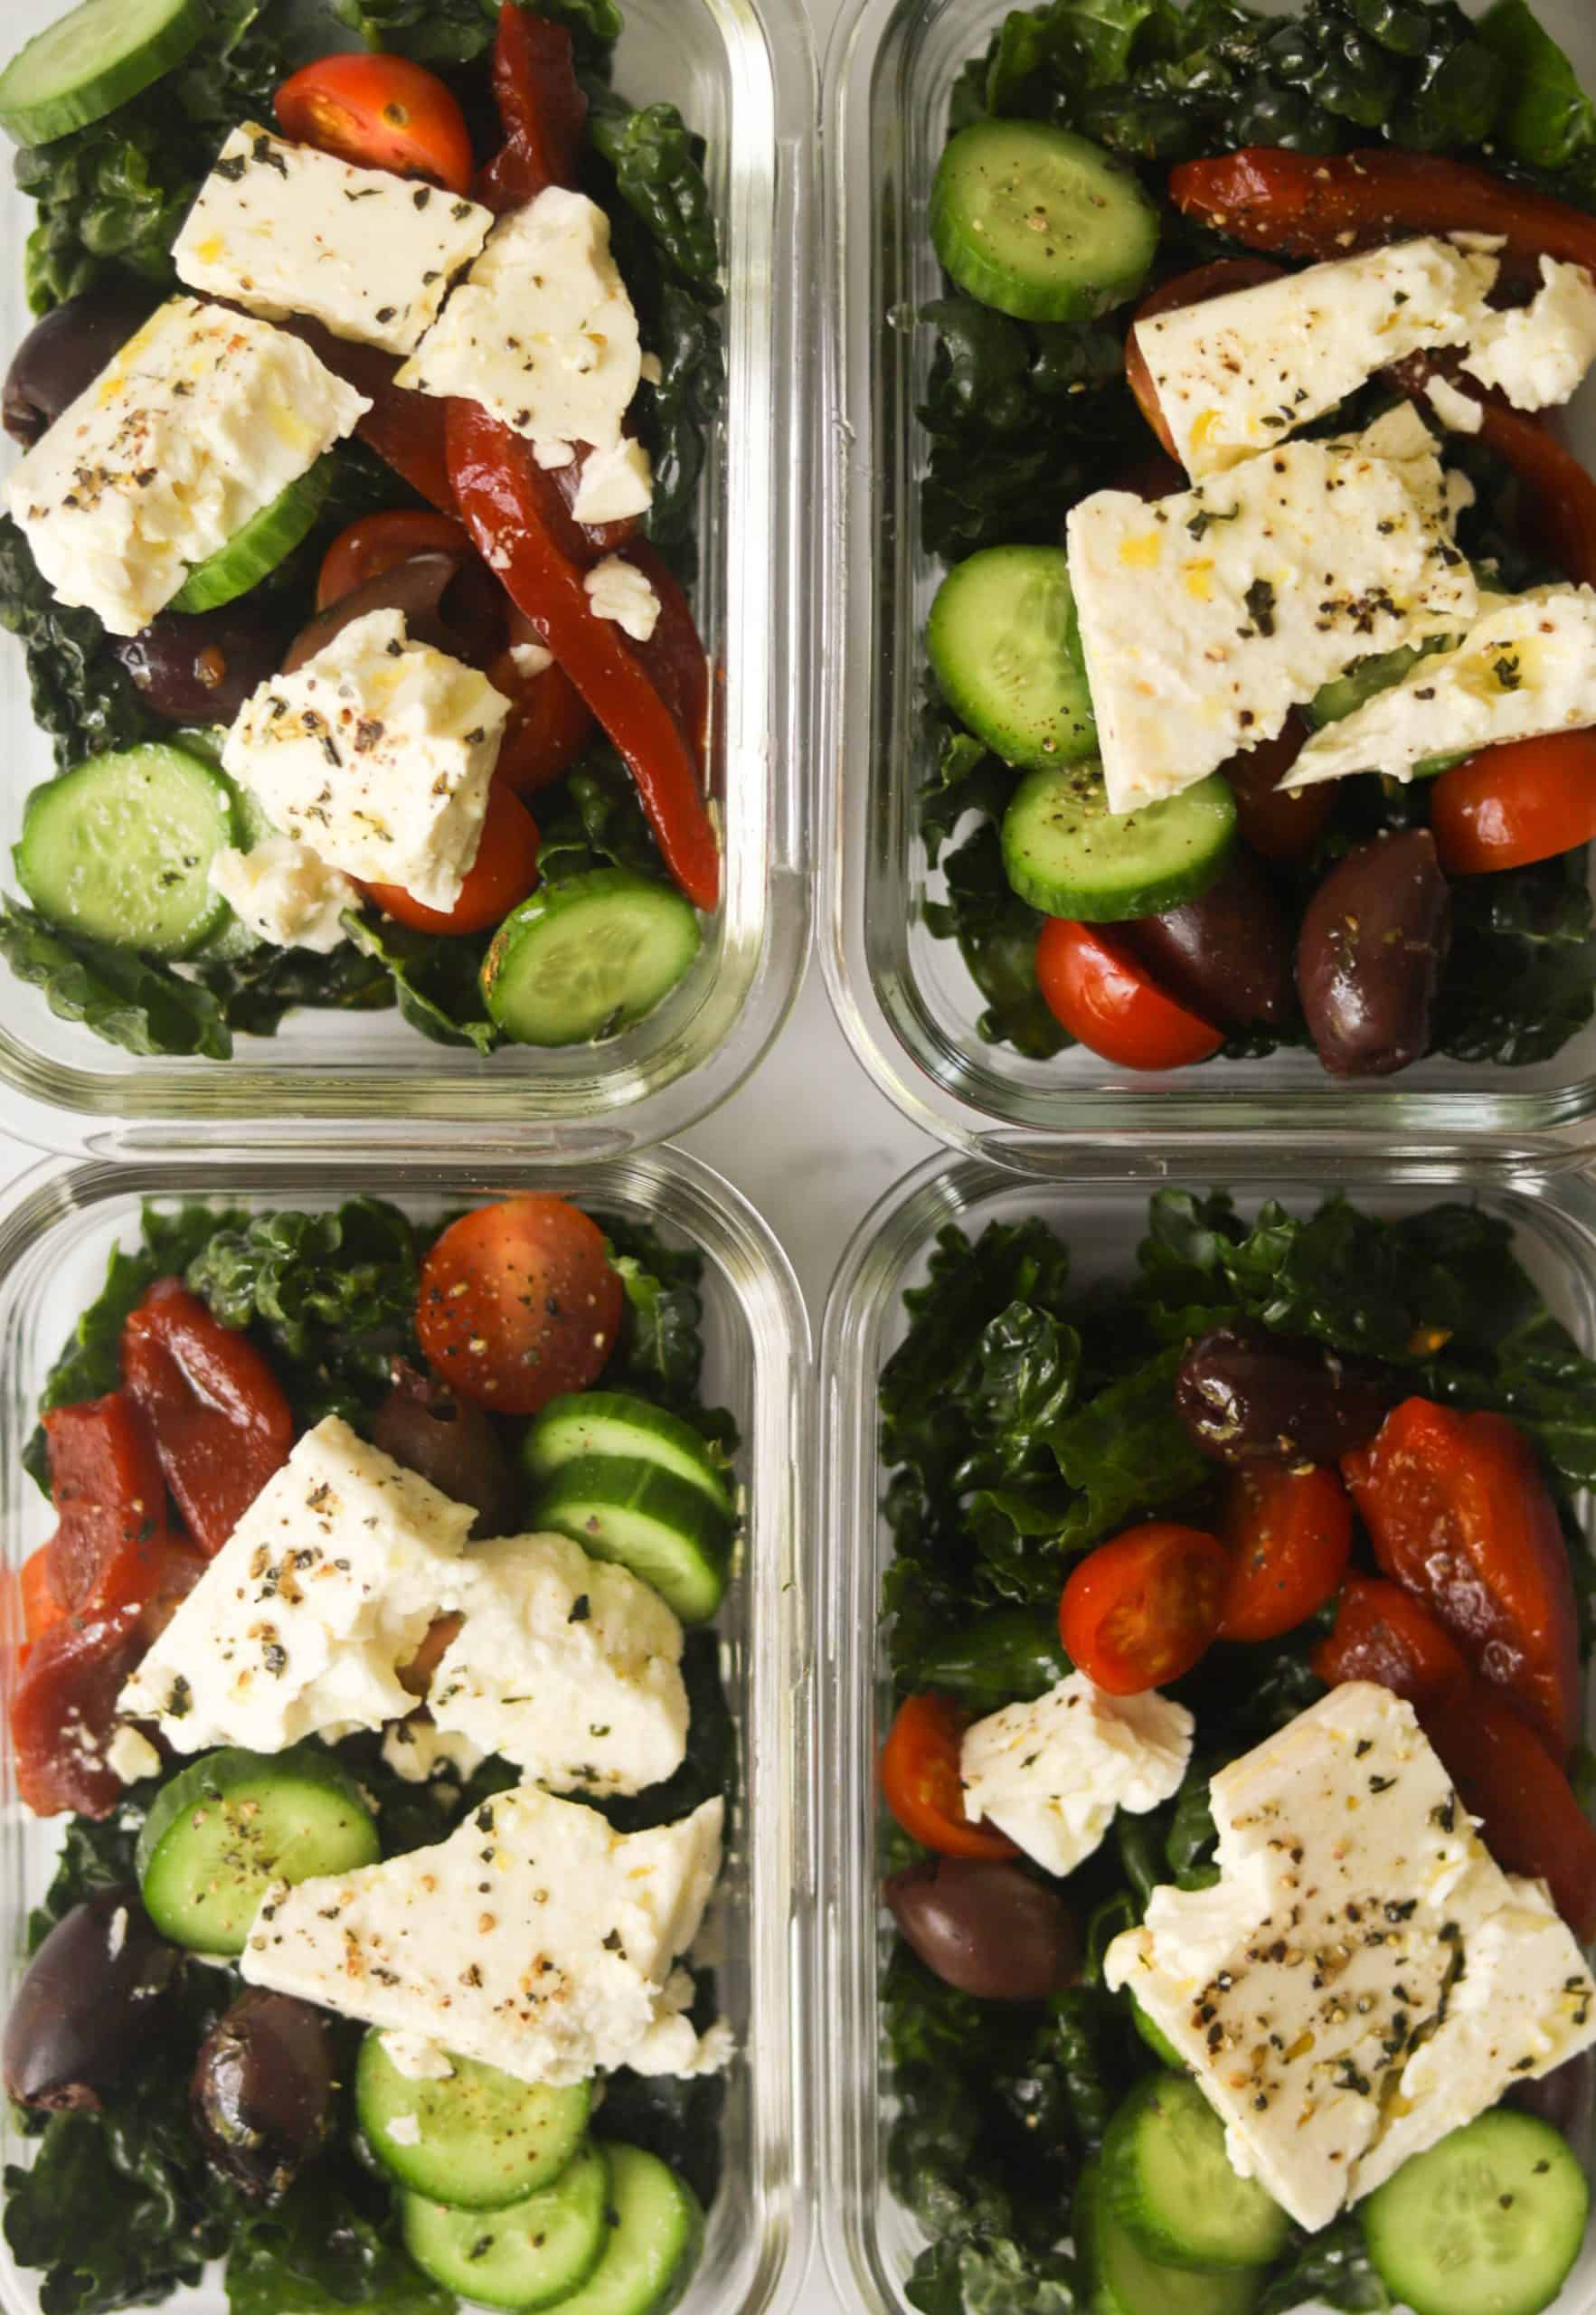 Meal prep containers with Mediterranean kale salad.